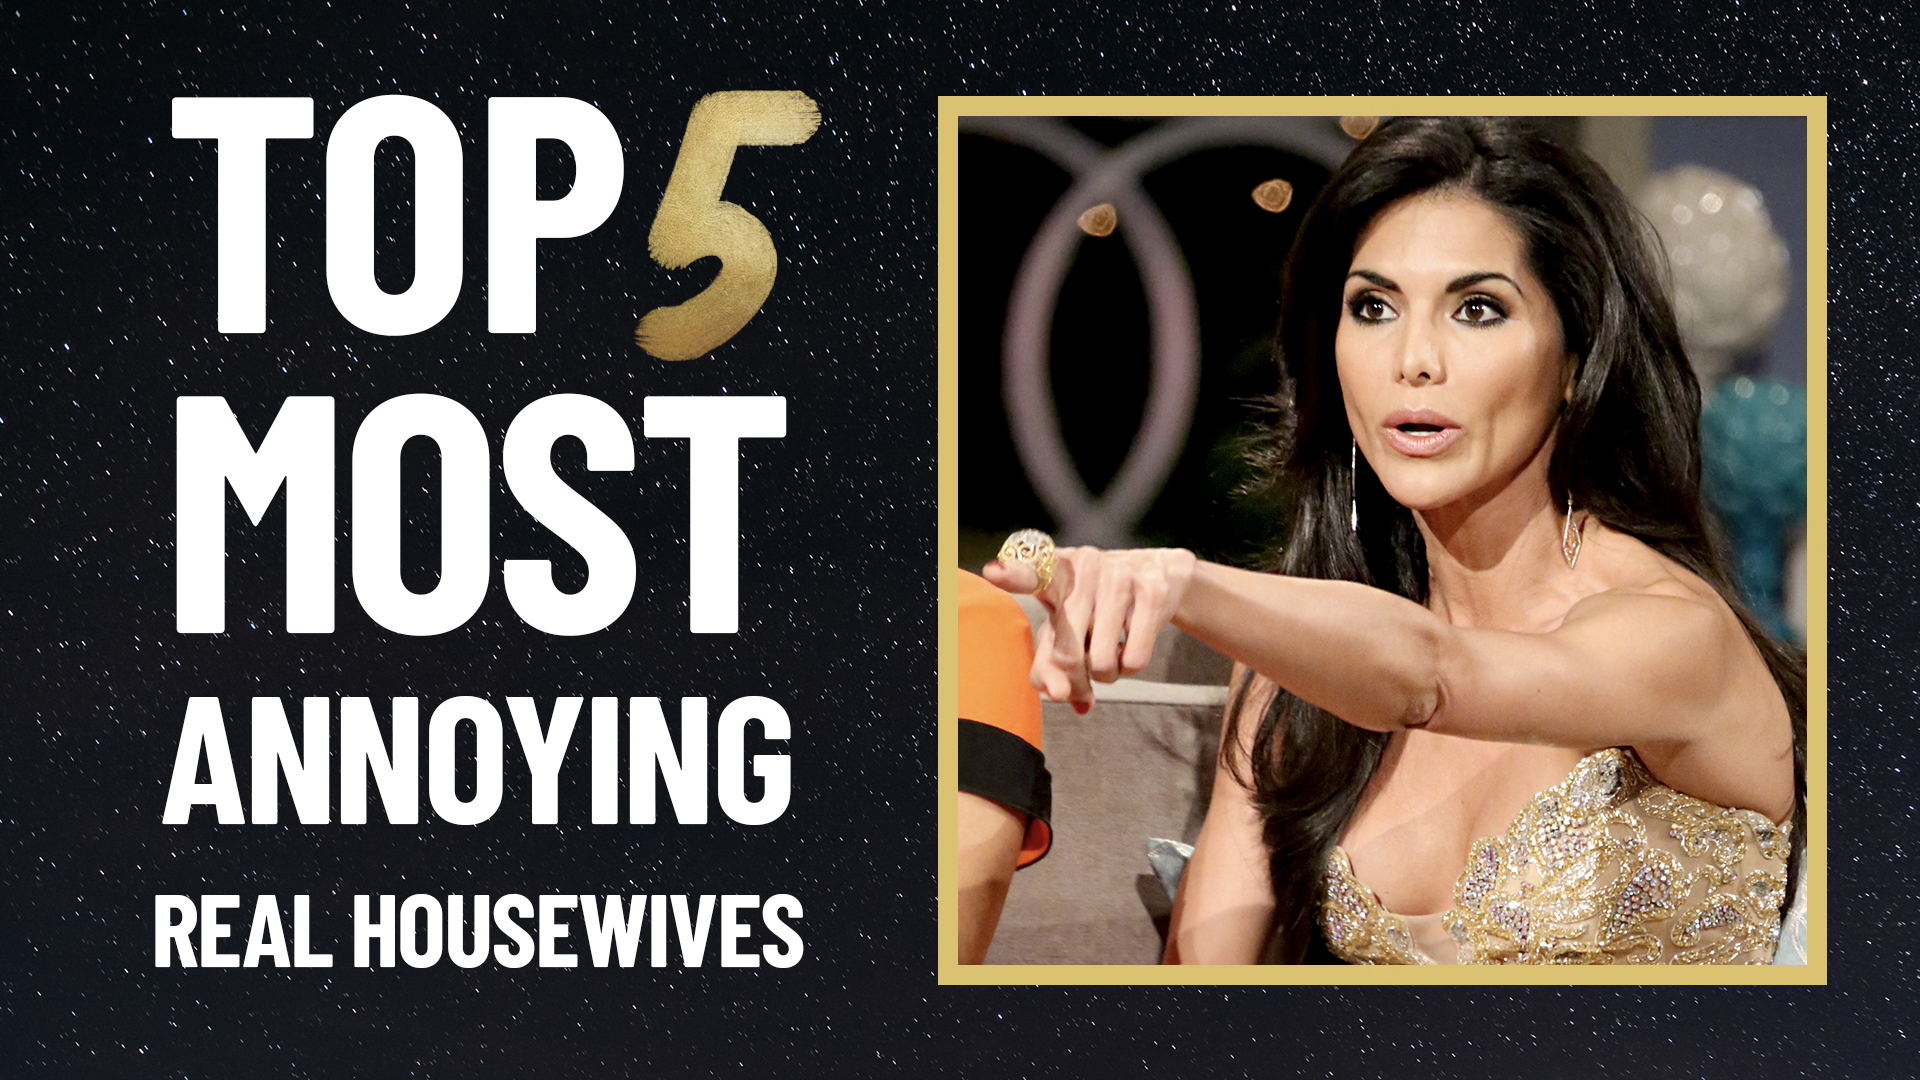 Top 5 Most Annoying Real Housewives